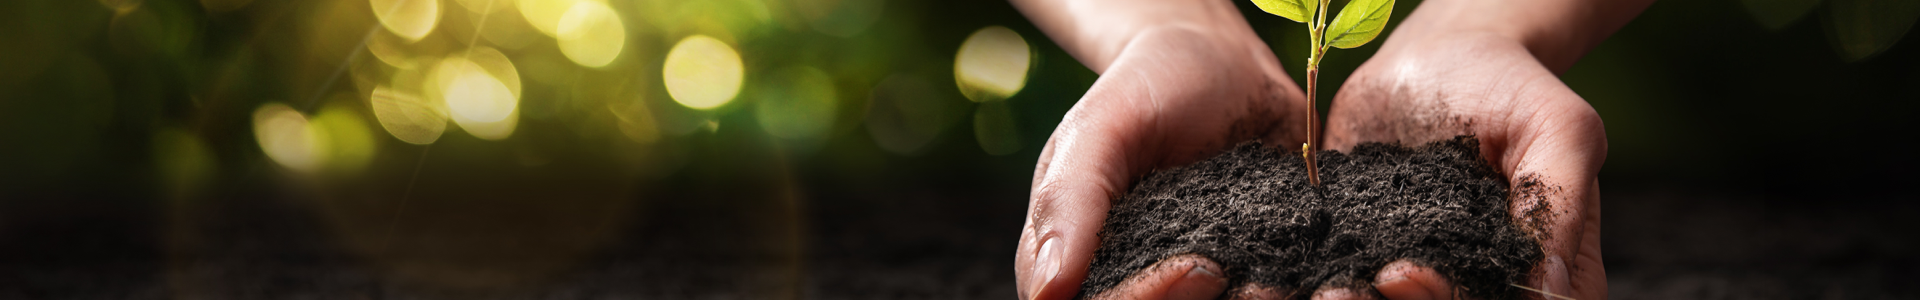 hands holding soil and small tree